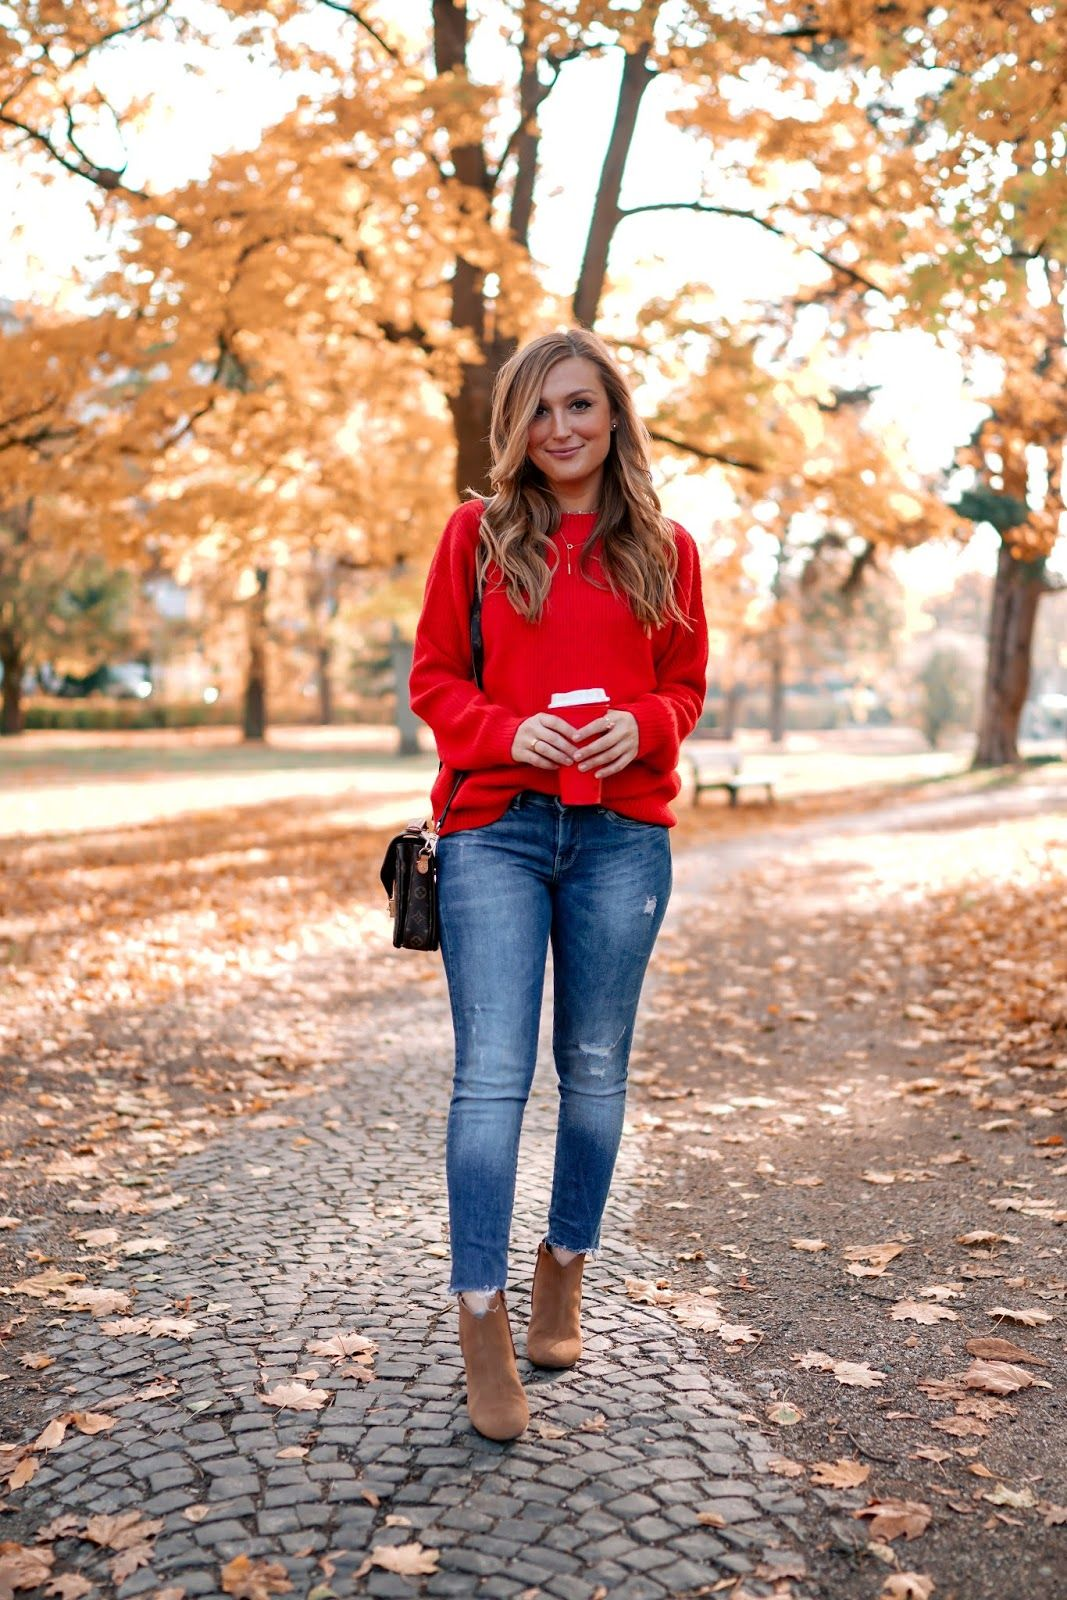 buy online b558b 62eb4 Roter Pullover | fall fashion 2018 | Red sweater outfit ...